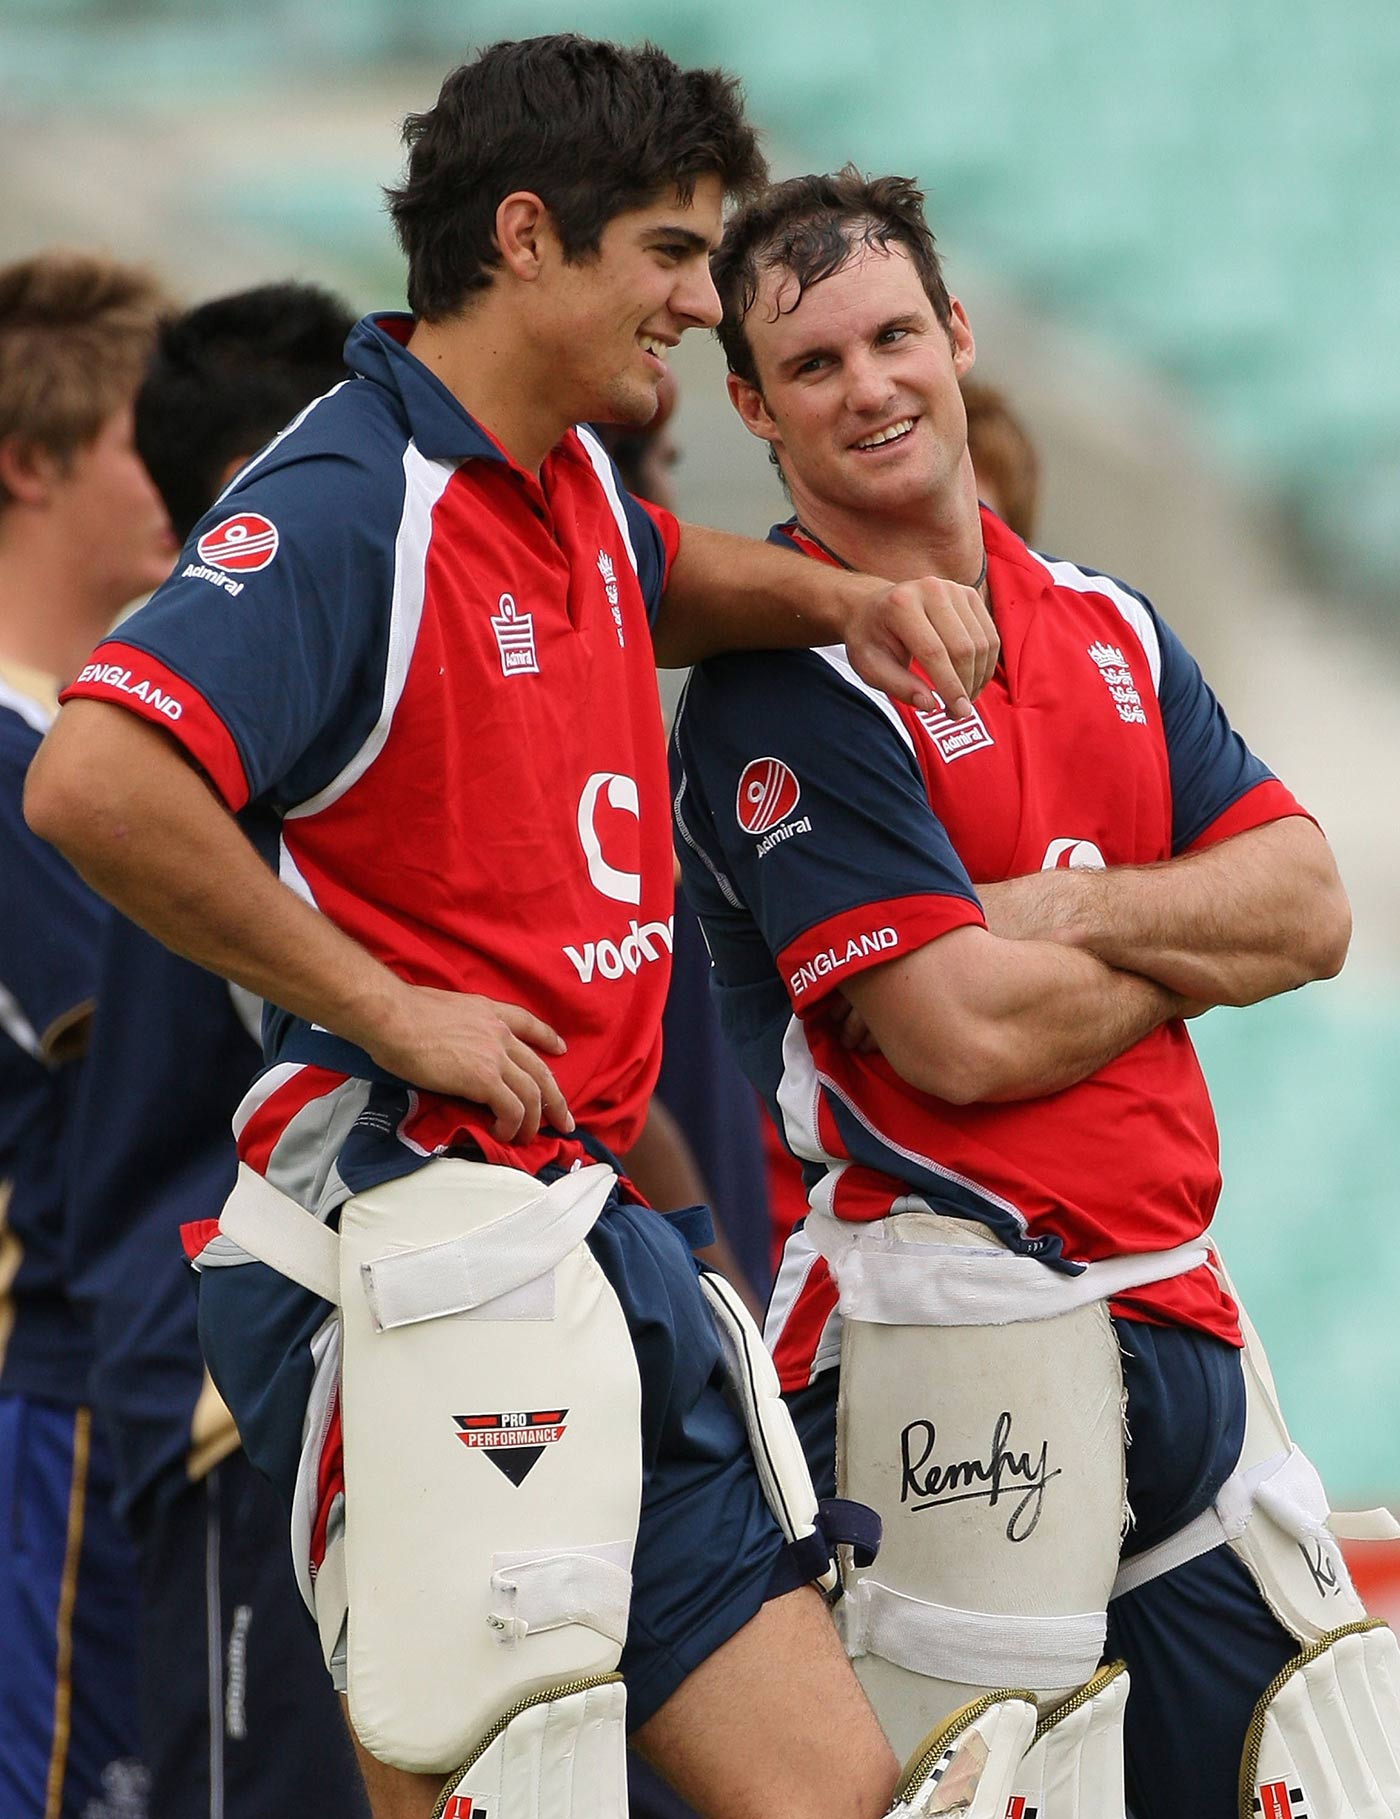 Andrew Strauss thought batting partner Alastair Cook stood out for not being afraid to contribute to team discussions even as a newbie